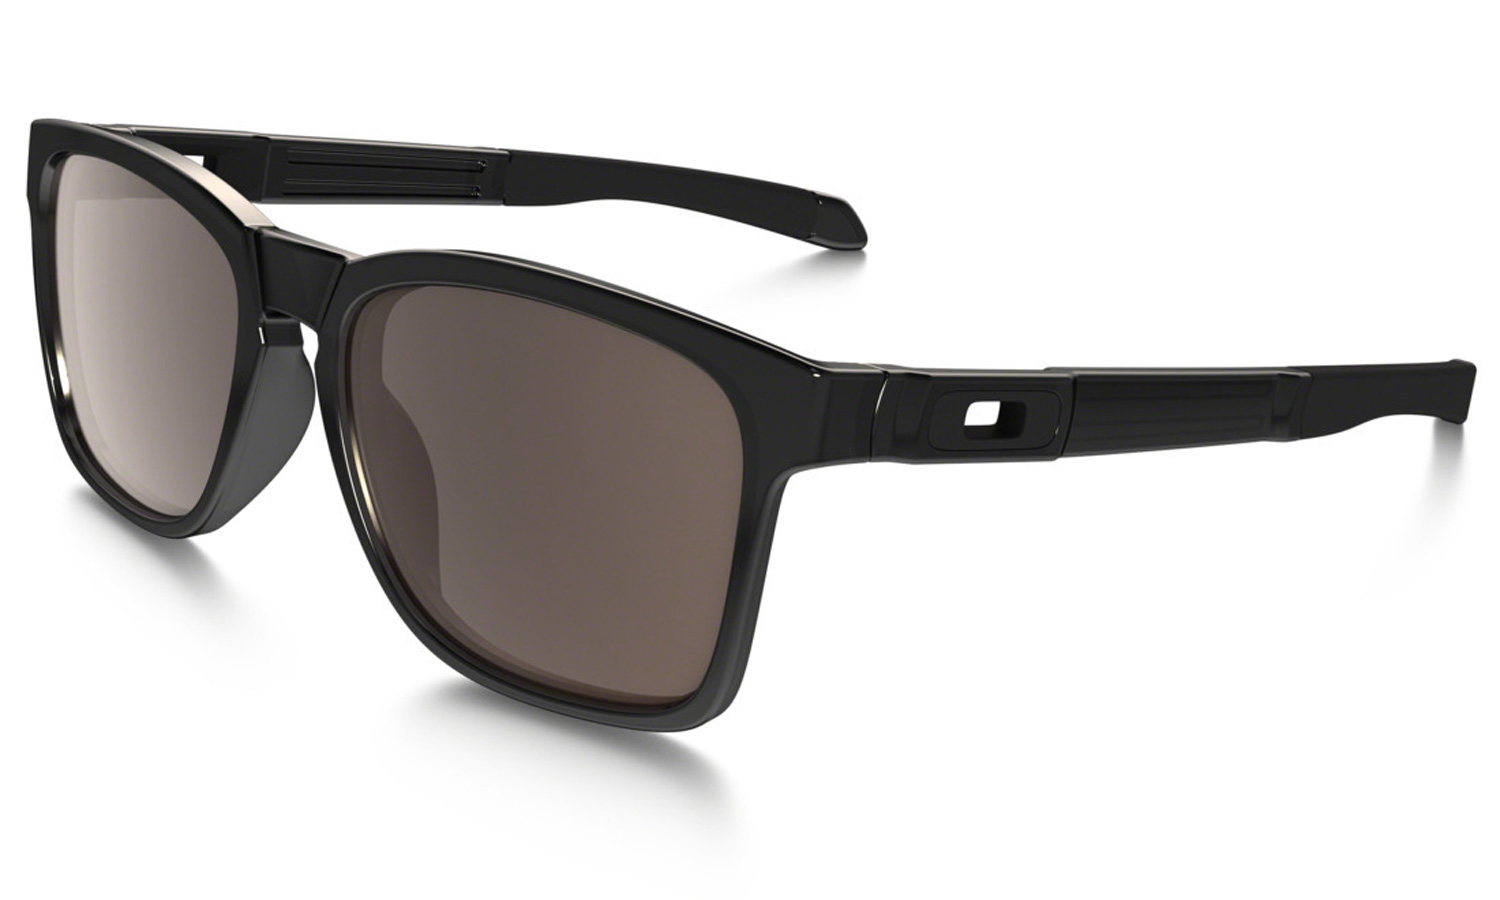 84a7dac18d Oakley Catalyst Sunglasses Black Ink with Warm Grey Lens ...